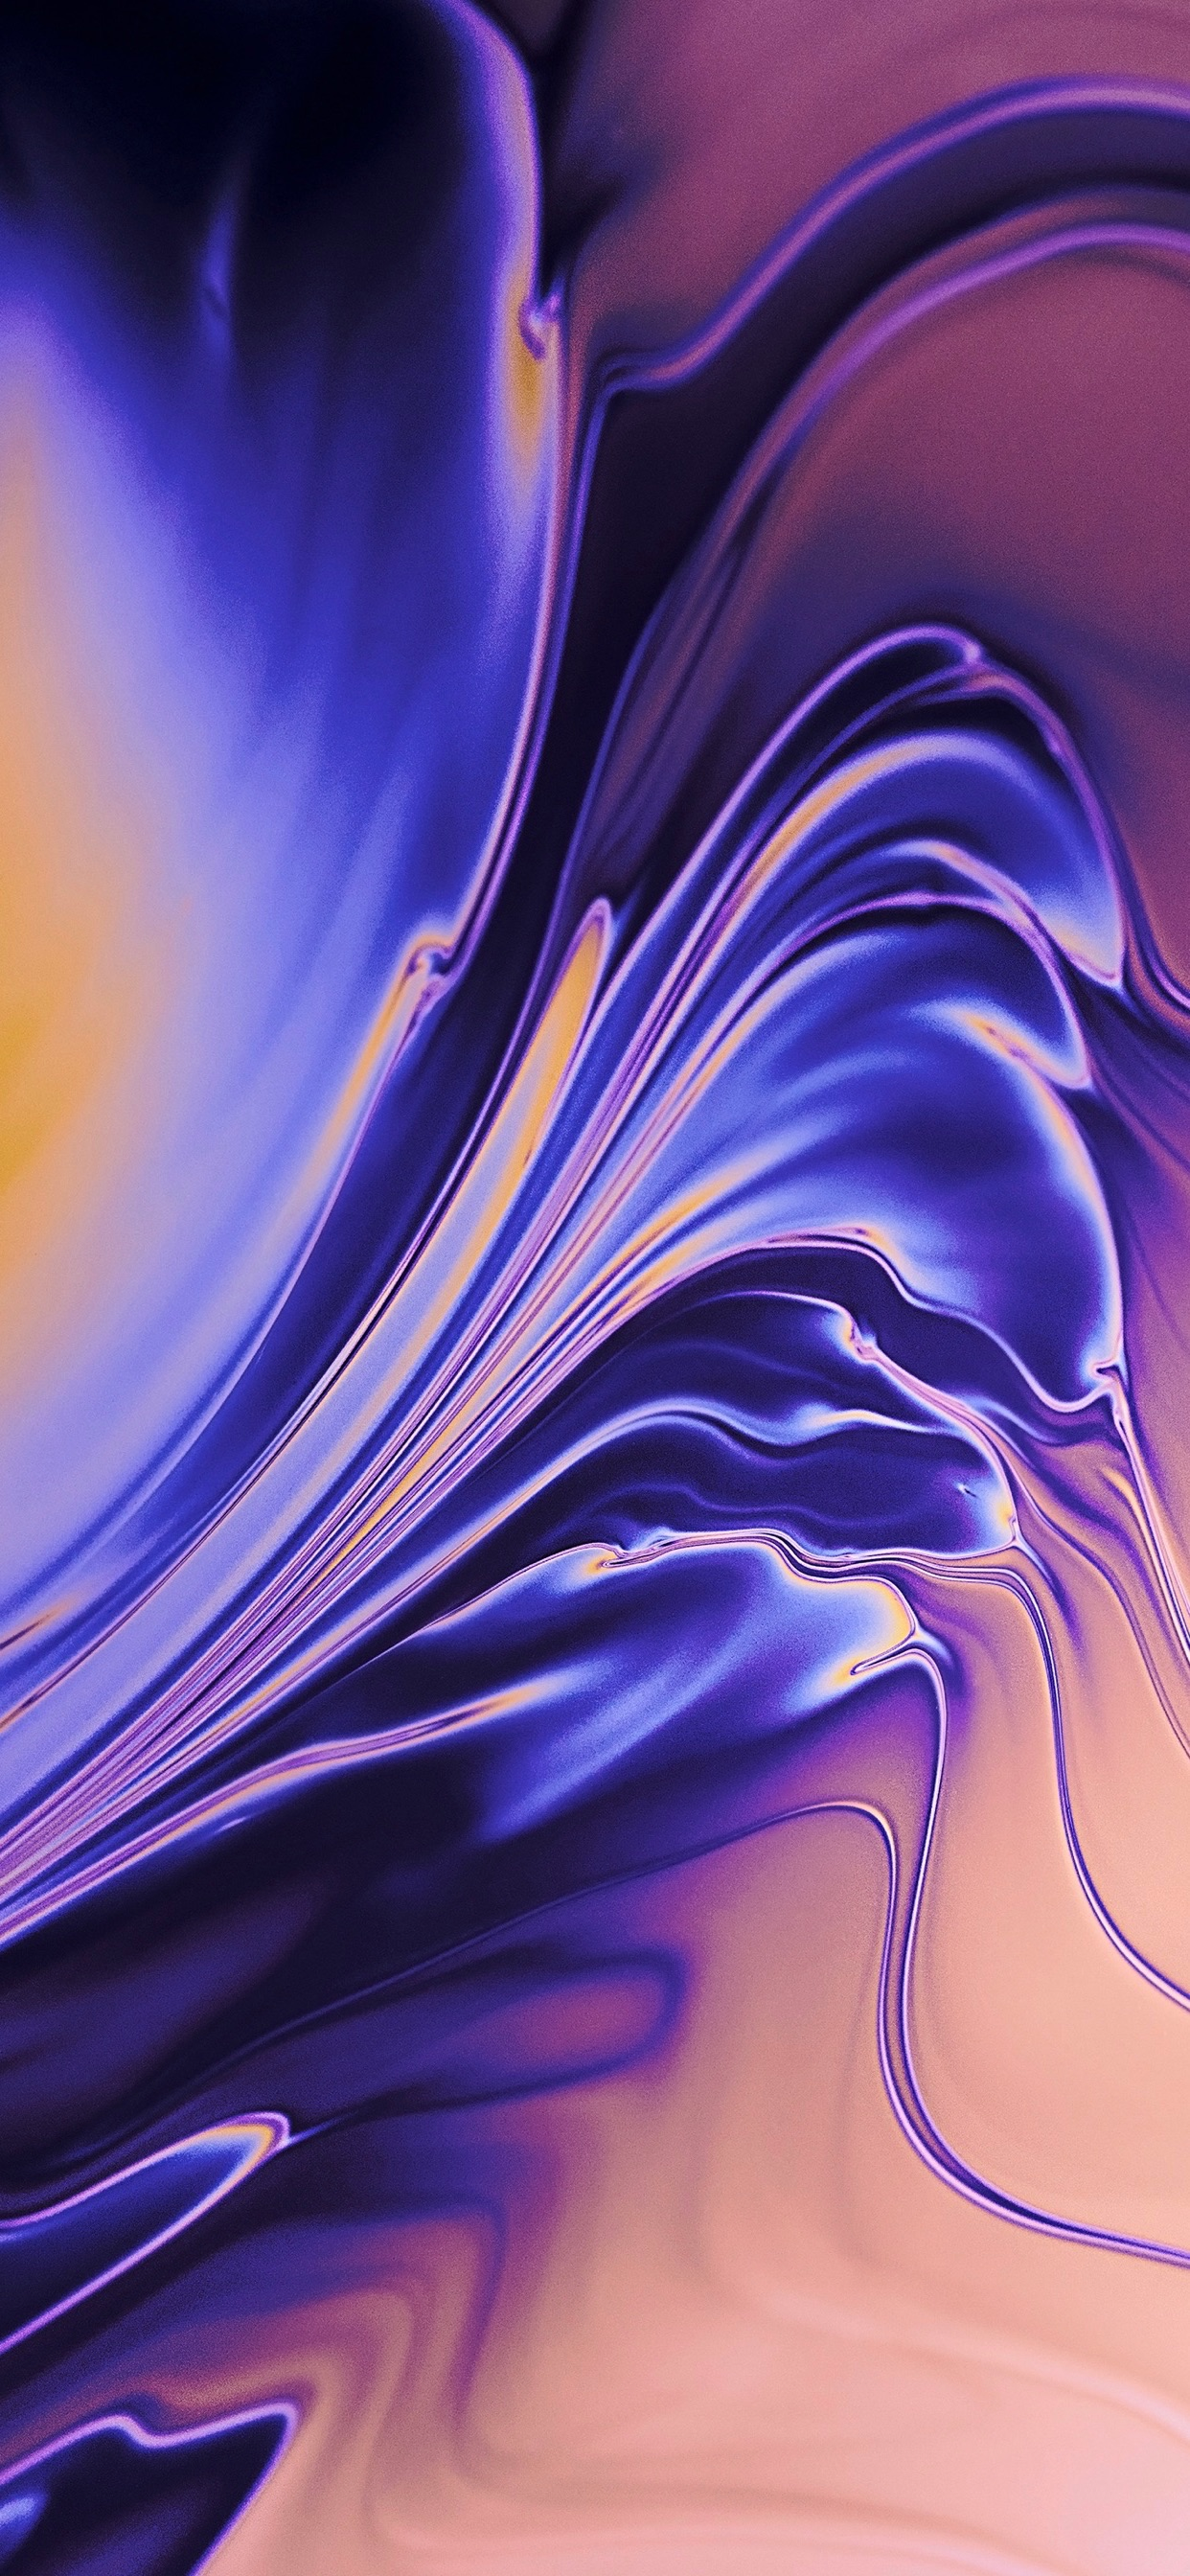 Wallpaper Weekends: Abstract iPhone Wallpapers From the macOS Desktop Pictures Folder